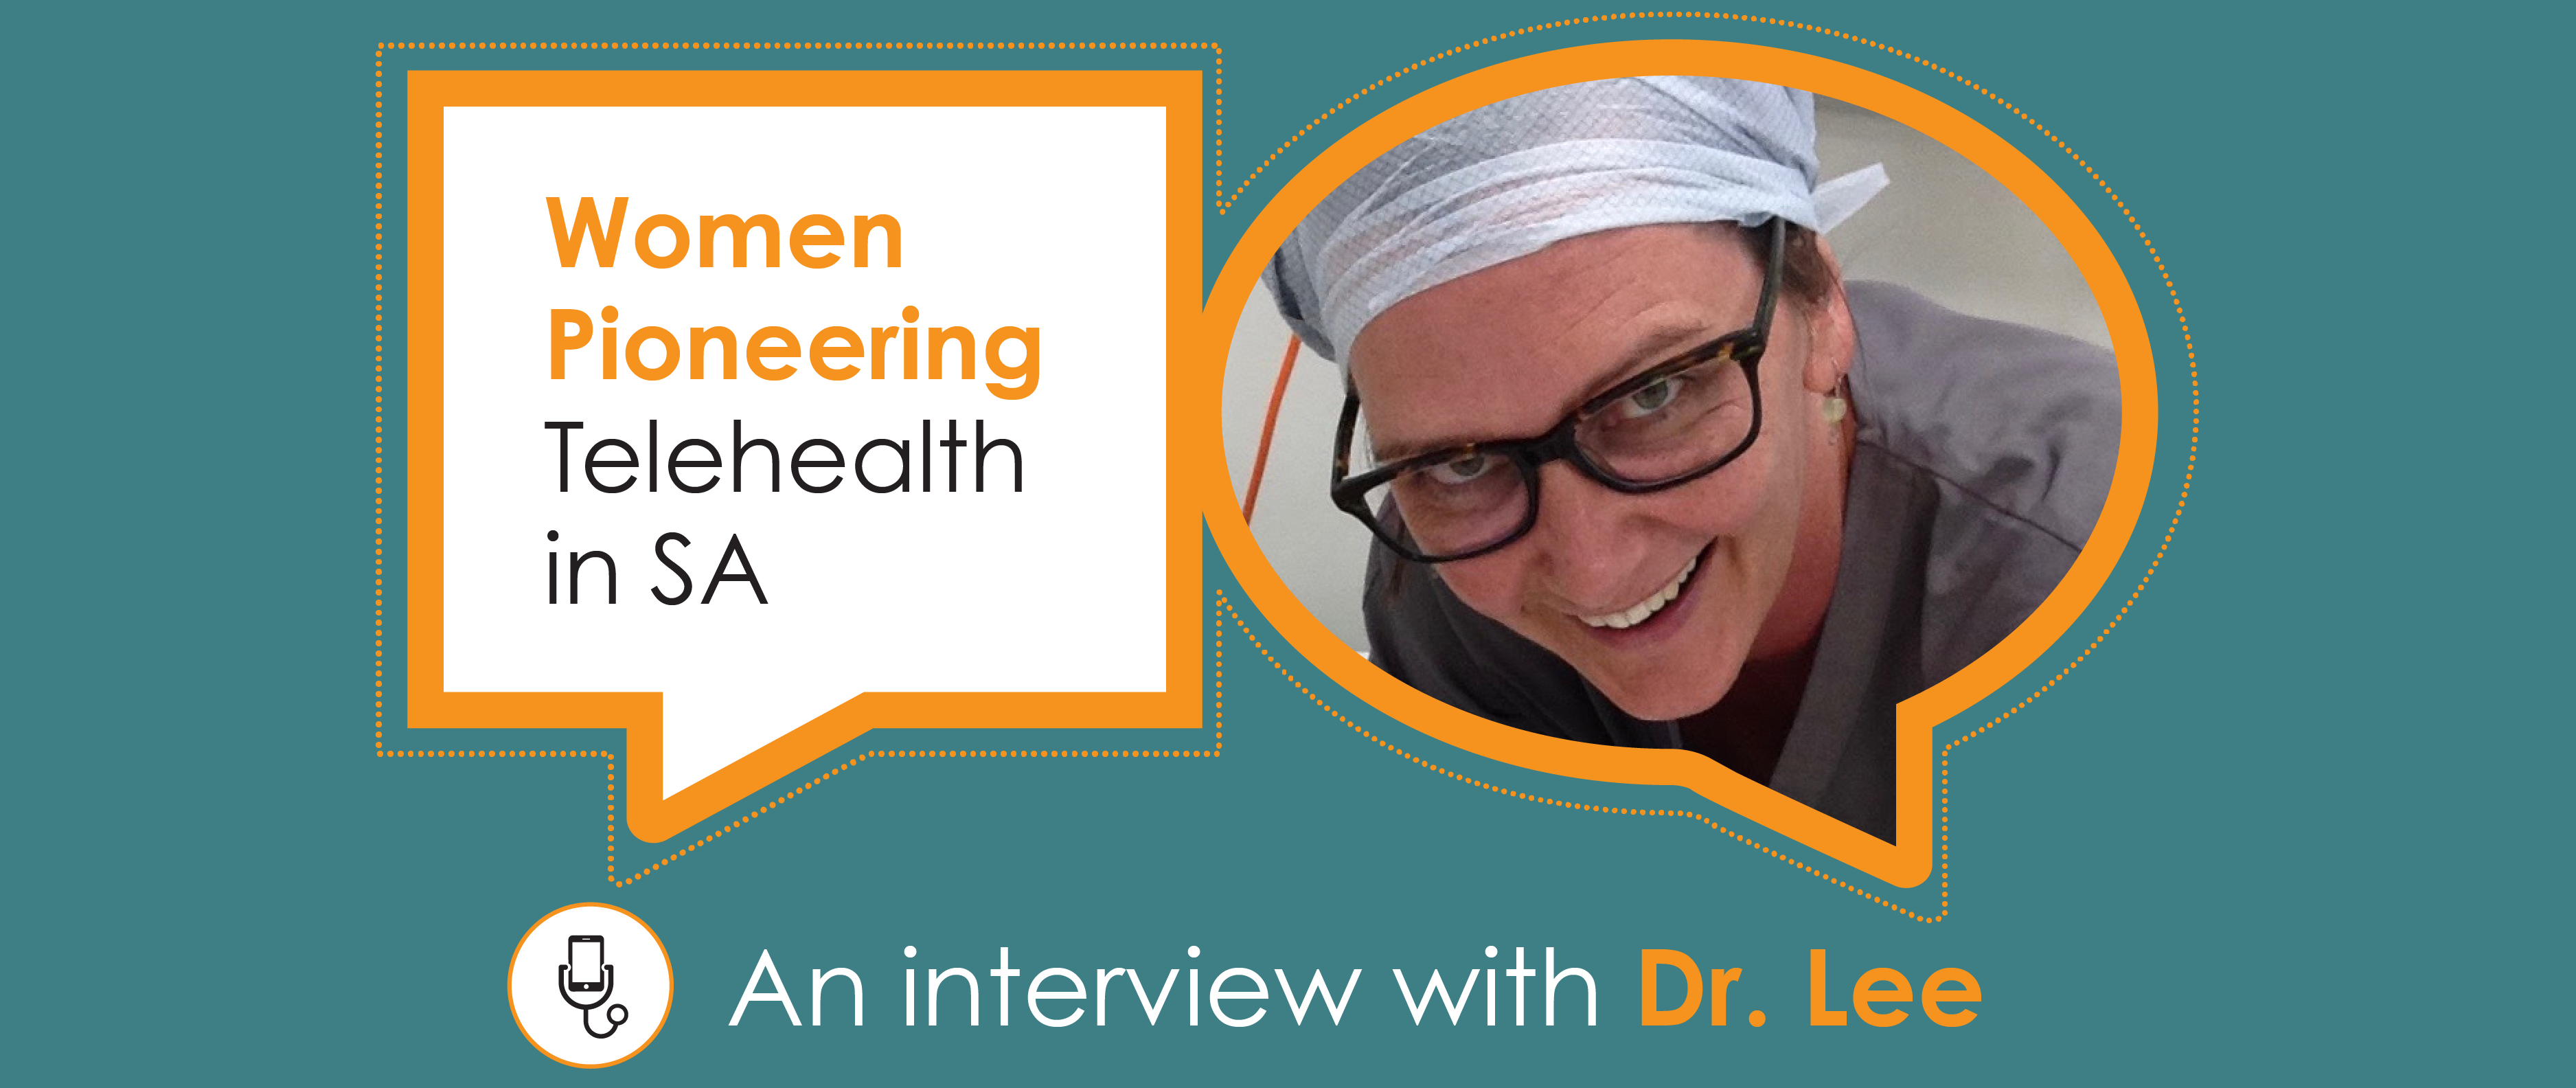 Women Pioneering Telehealth in SA: An interview with Dr Lee